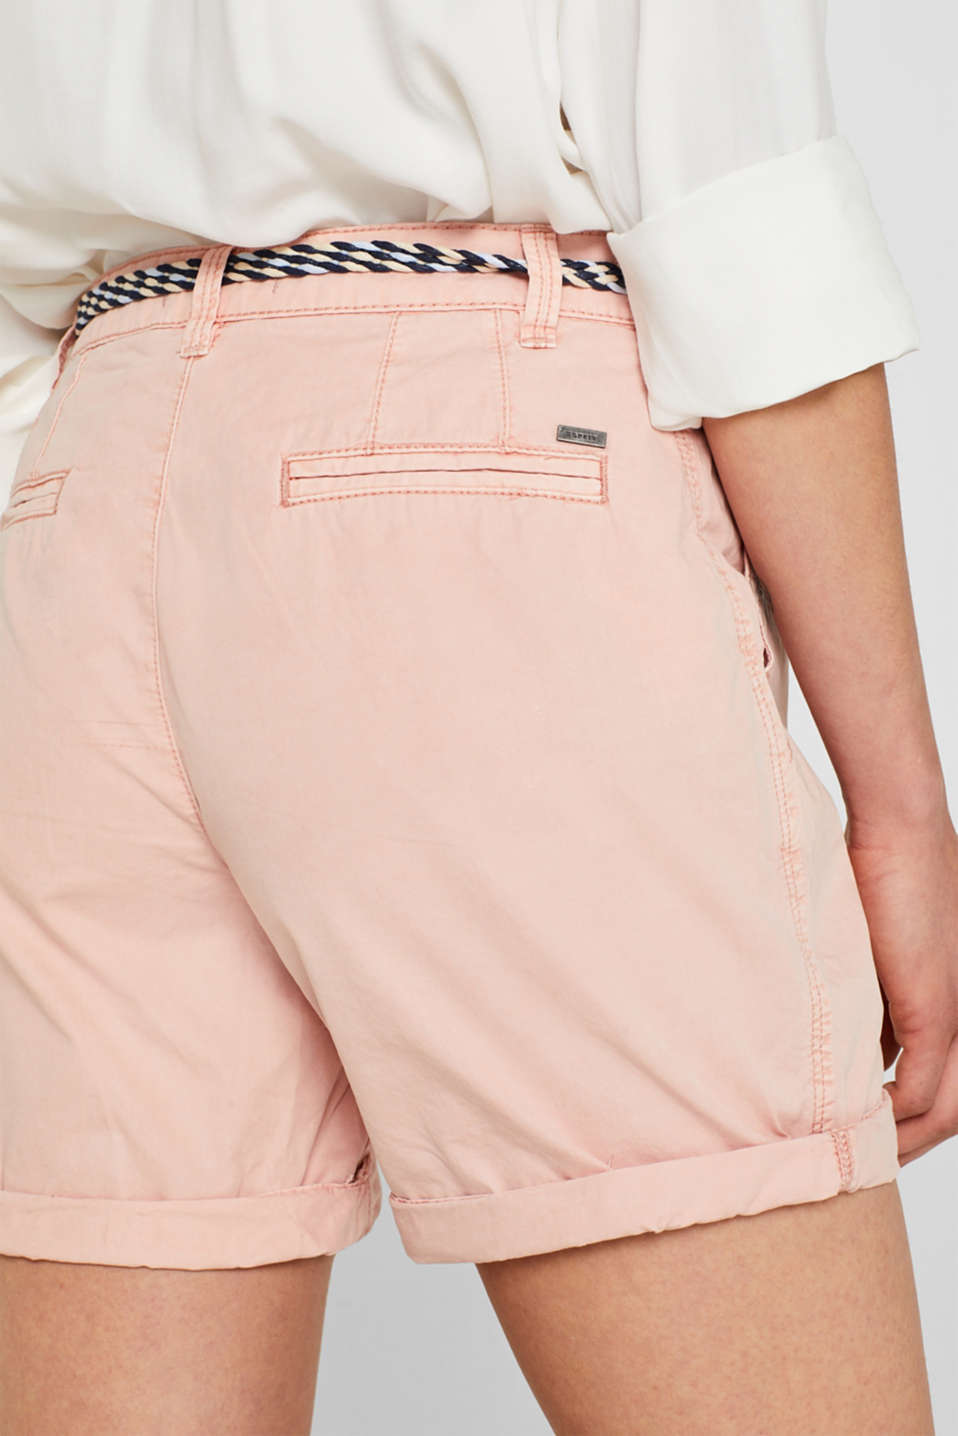 Shorts in a garment-washed look, 100% cotton, LIGHT PINK, detail image number 5